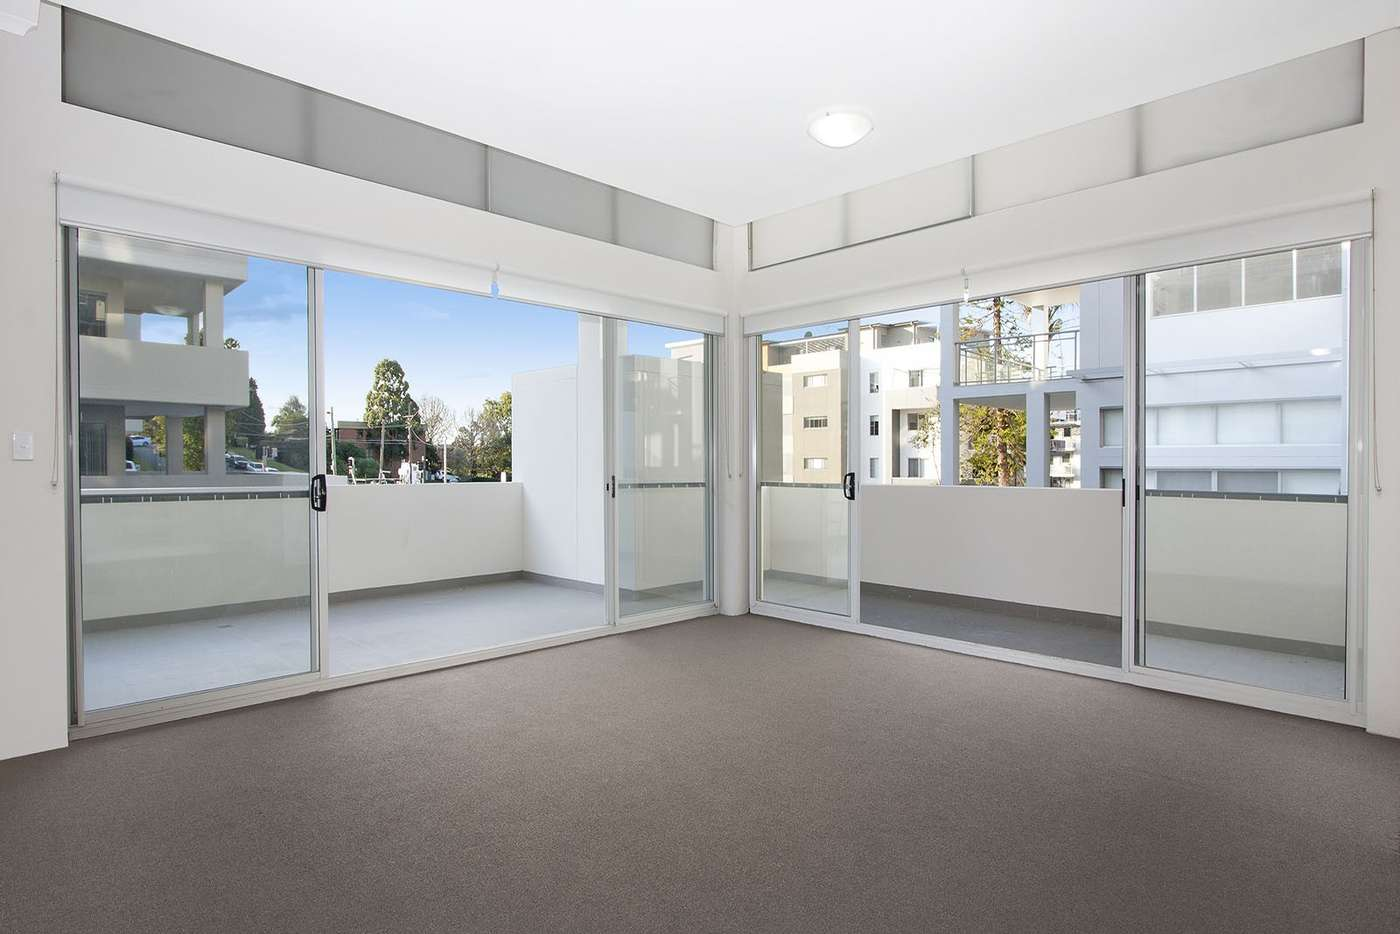 Main view of Homely apartment listing, 5/70-72 Keeler Street, Carlingford NSW 2118